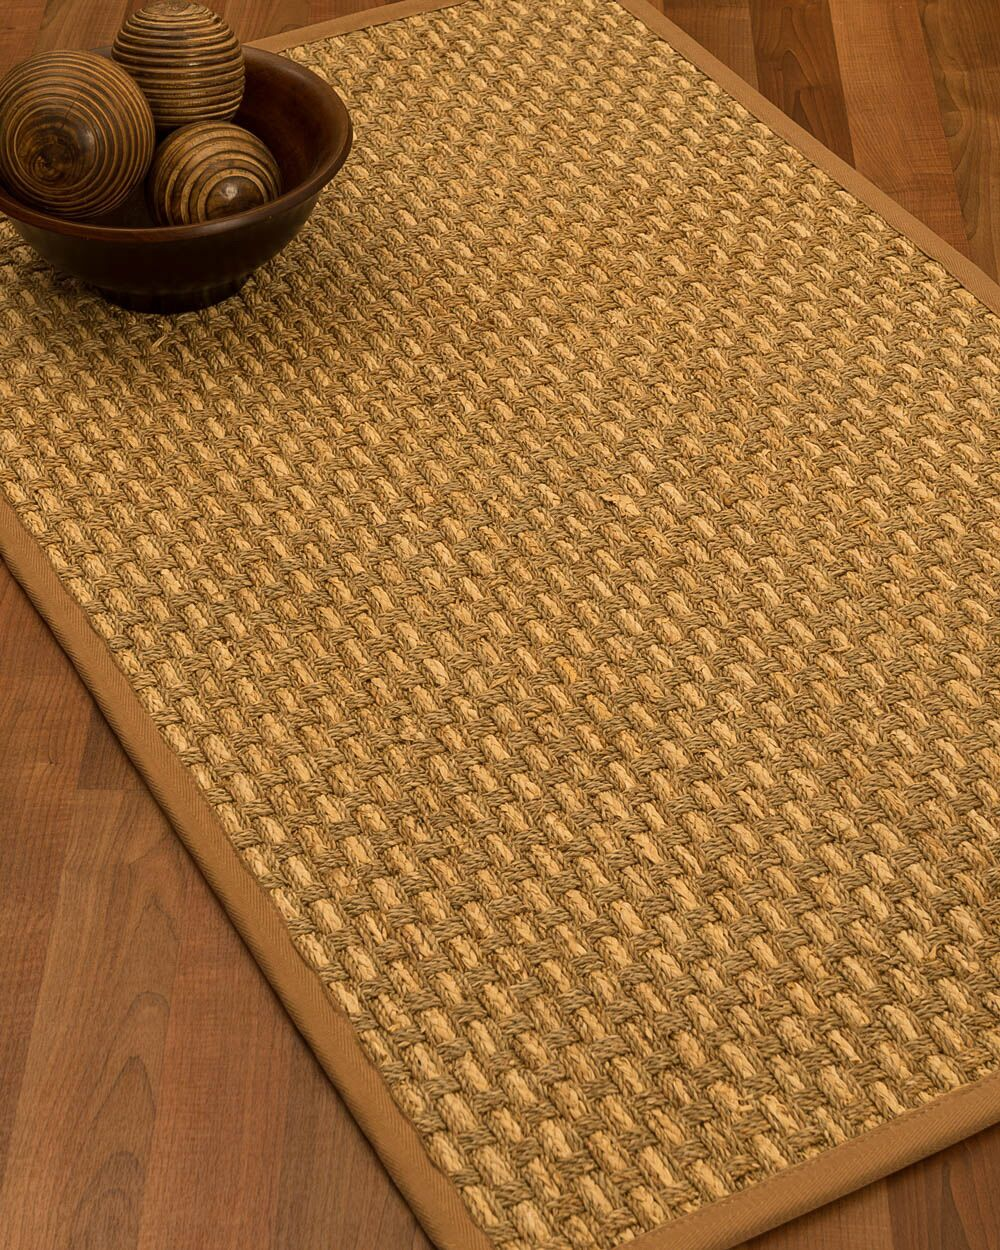 Castiglia Border Hand-Woven Beige/Sienna Area Rug Rug Pad Included: No, Rug Size: Rectangle 3' x 5'